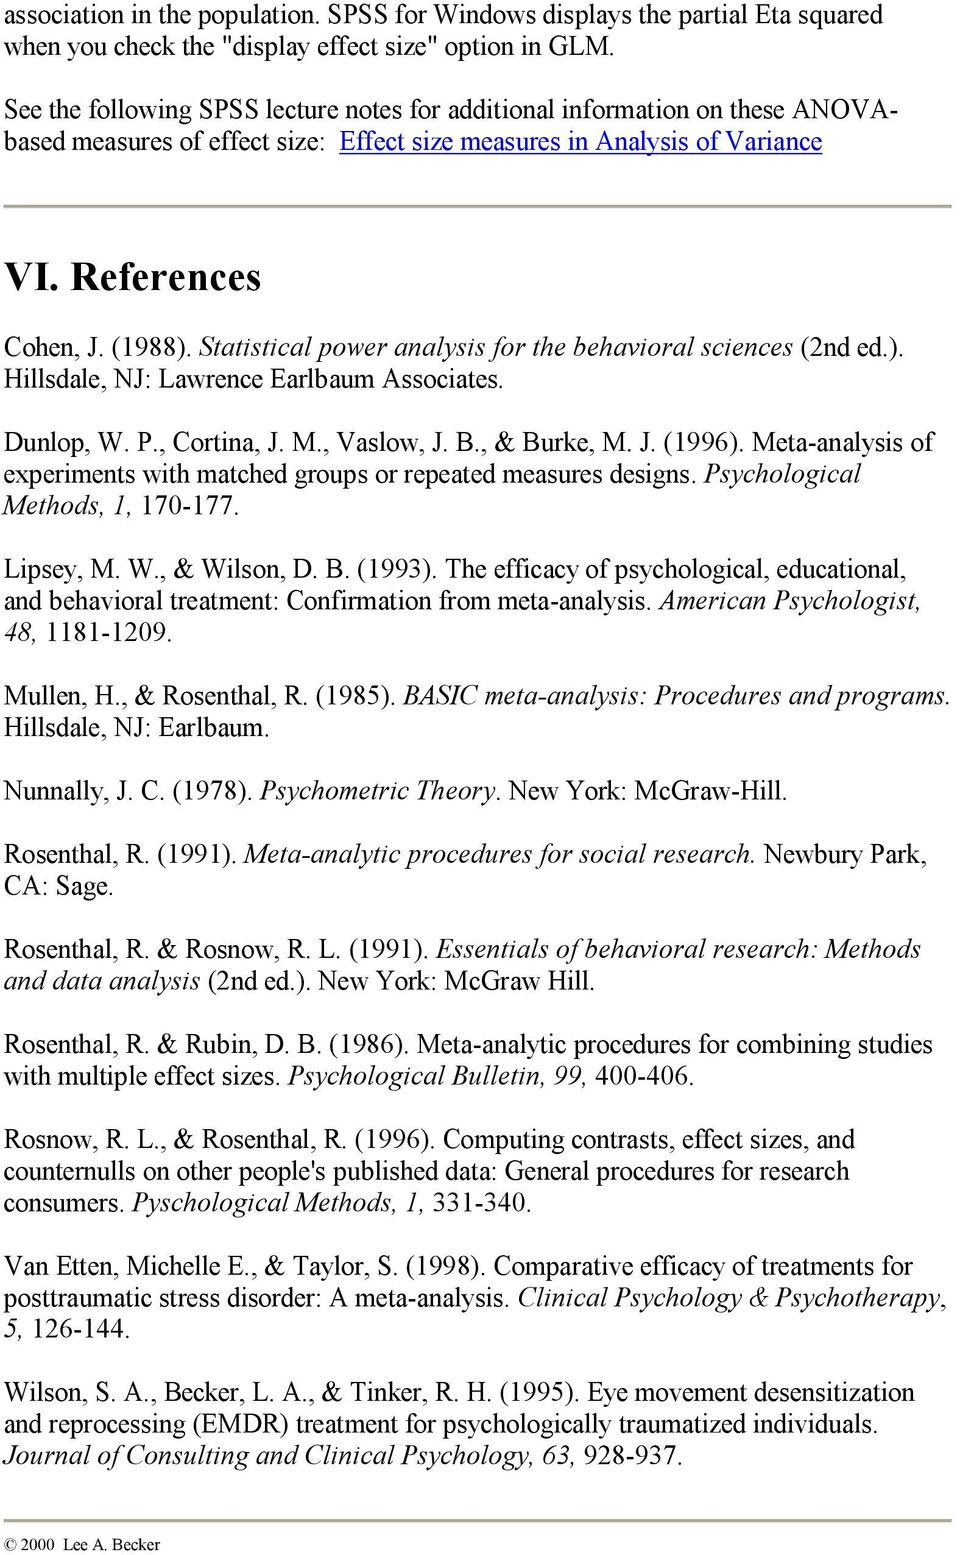 Statistical power analysis for the behavioral sciences (2nd ed.). Hillsdale, NJ: Lawrence Earlbaum Associates. Dunlop, W. P., Cortina, J. M., Vaslow, J. B., & Burke, M. J. (1996).